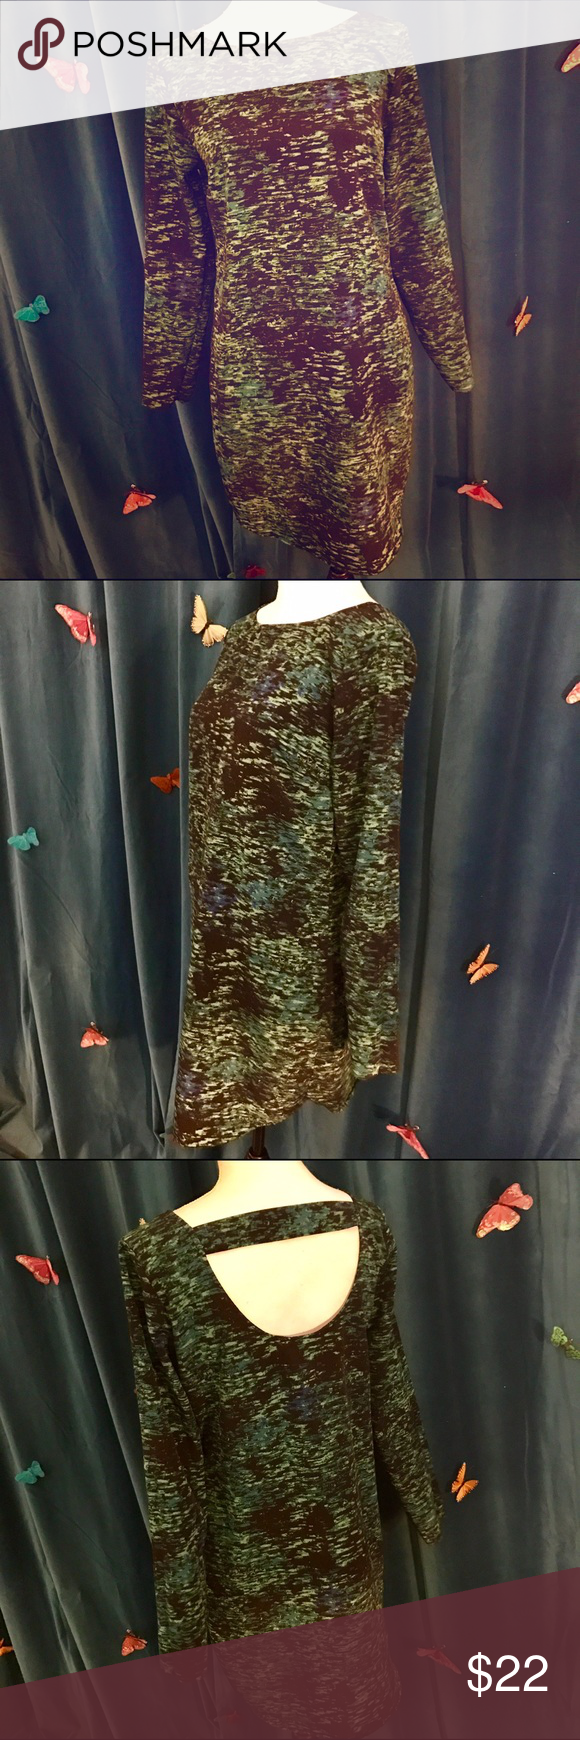 GAP Black & Teal Green Abstract Print LS Dress S Funky dress purchased at GAP & worn once; in great condition with no noticeable wear. Cool abstract pattern & open back. Best fits size S as marked & shown. GAP Dresses Long Sleeve